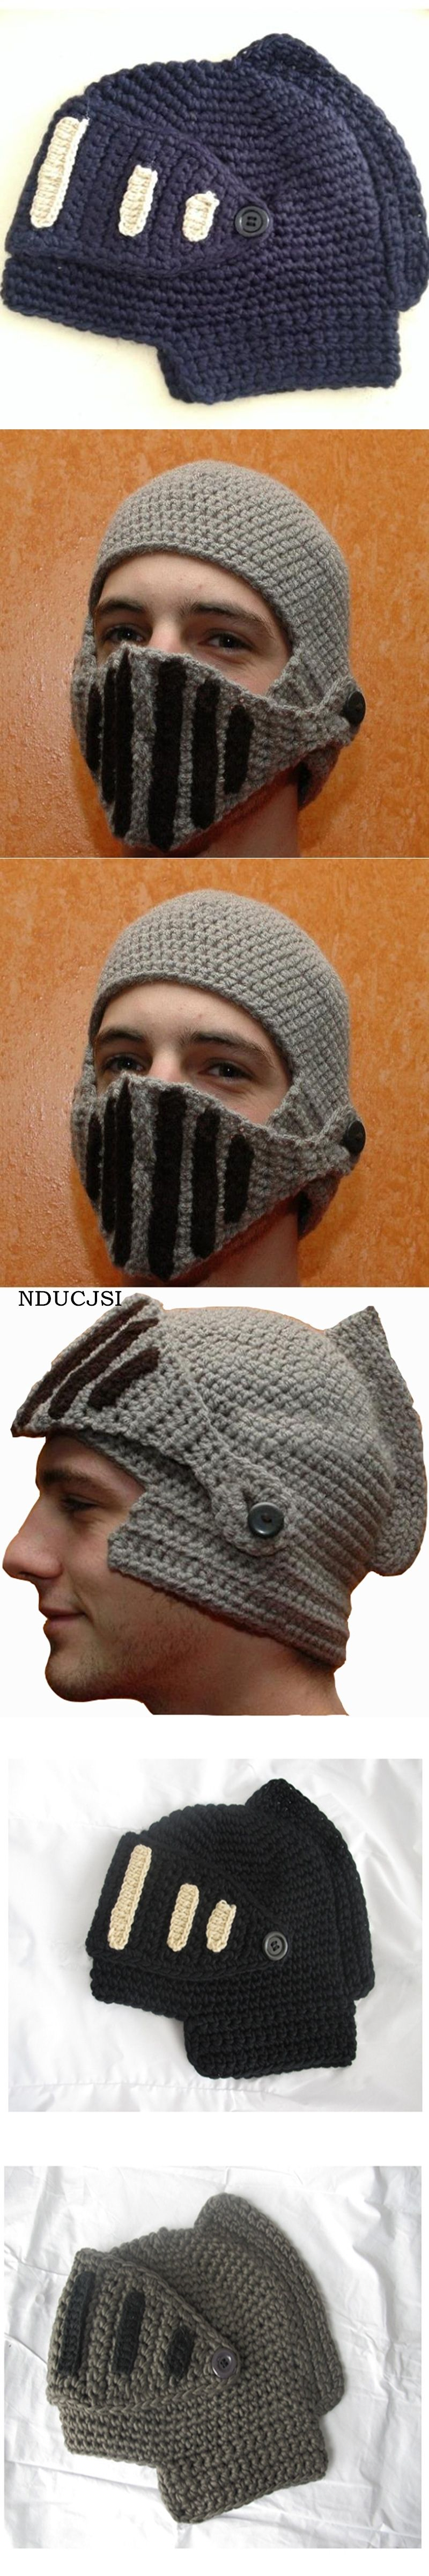 72eaf85adb4f8 NDUCJSI Winter Funny Roman Beanies Men Knight Women Hats Helmet Caps Beanie  Knit Ski Warm Cool